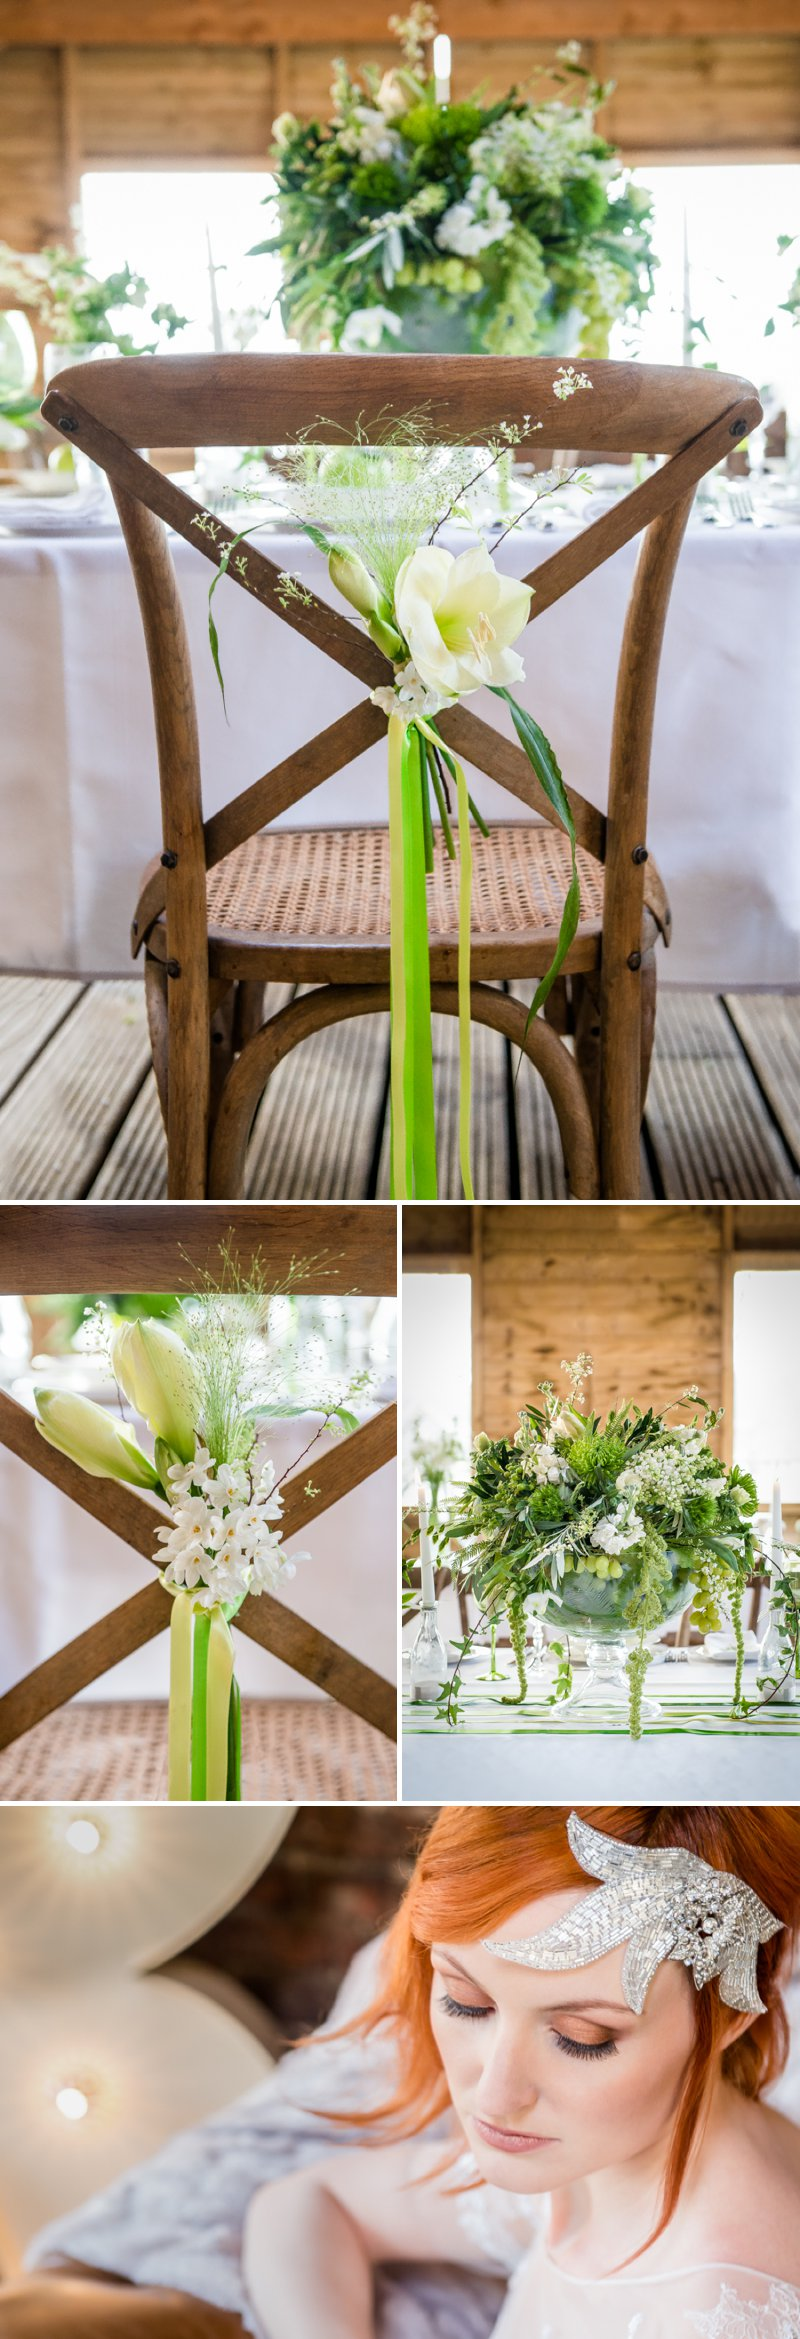 Rustic Glamour Inspired Shoot At York Maze With An Apple Green Colour Scheme Lots of Green Foliage And White Flowers With Images By Dominic Wright Photography 9